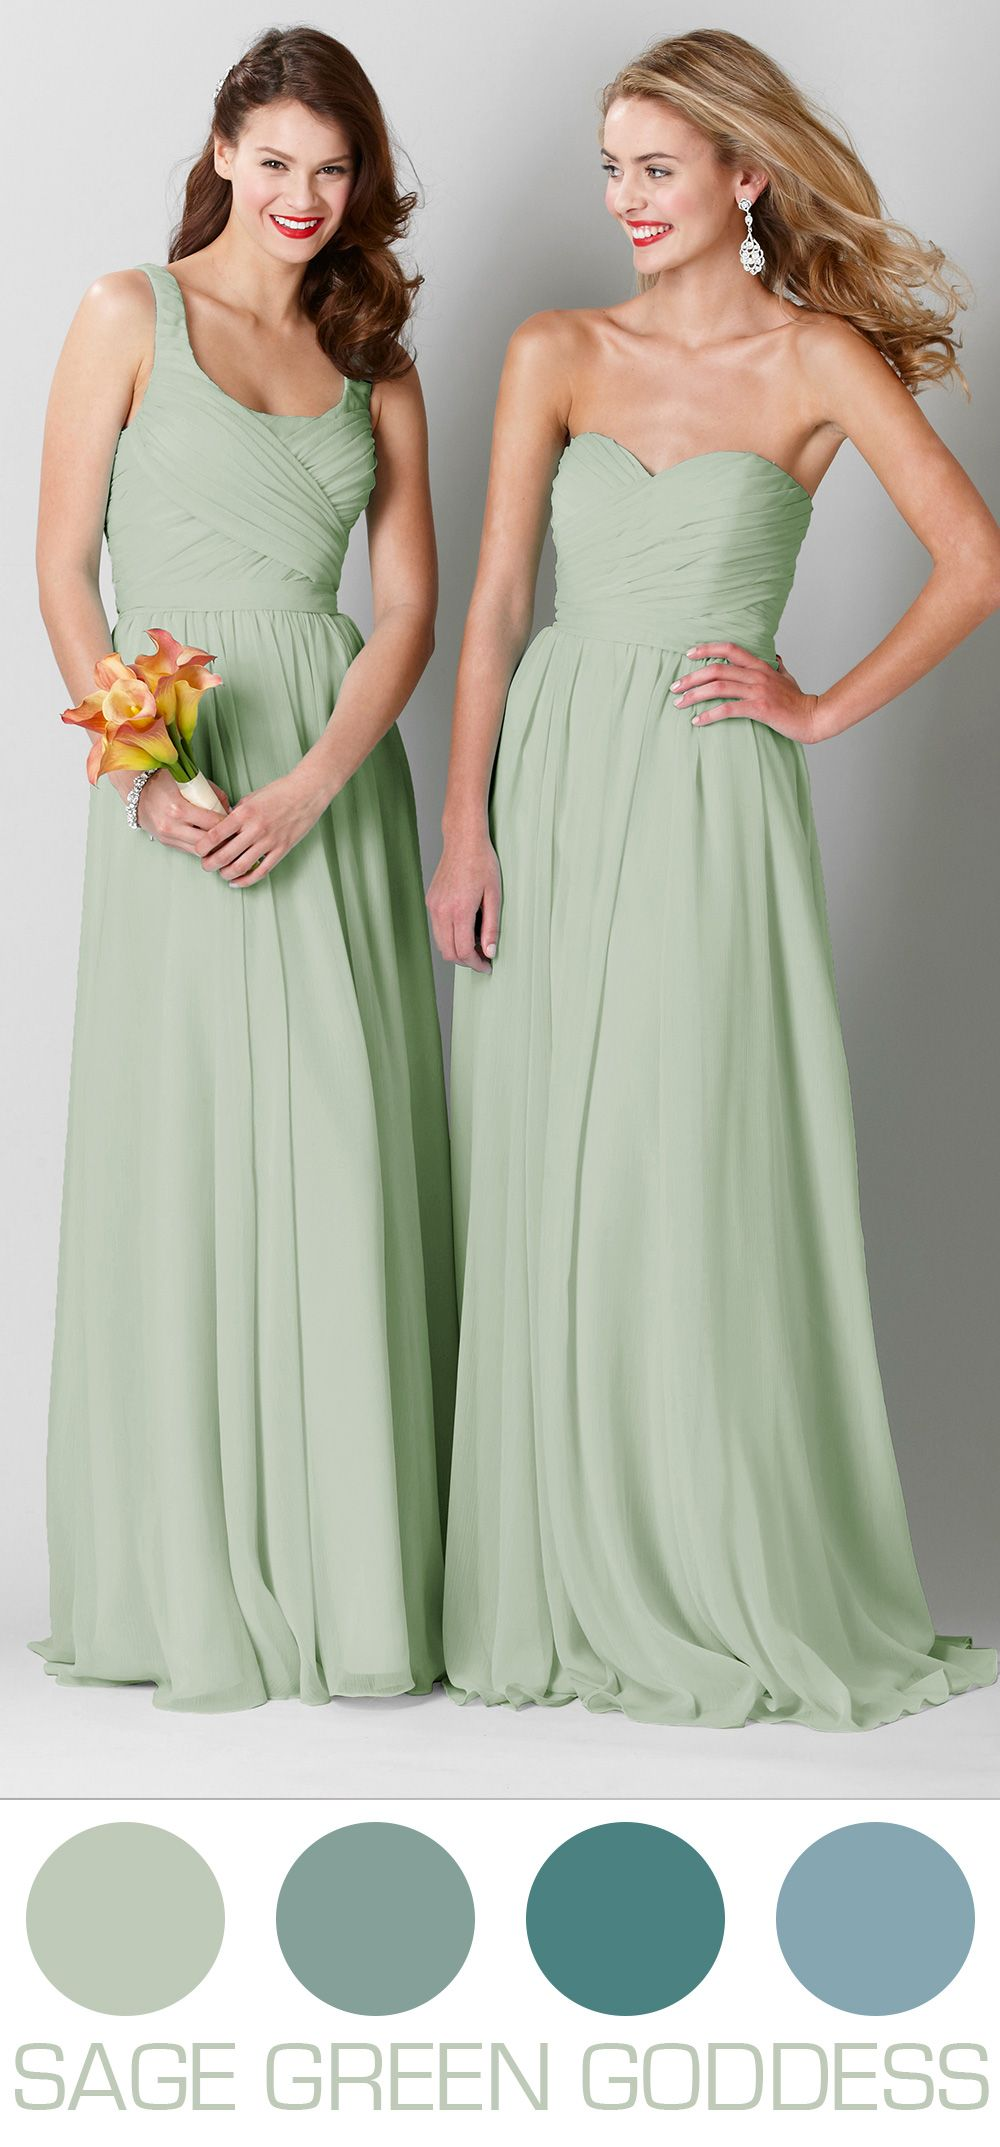 Sage green wedding inspiration featuring long chiffon bridesmaid sage green bridesmaid dresses are stunning in a spring or summer wedding ombrellifo Image collections